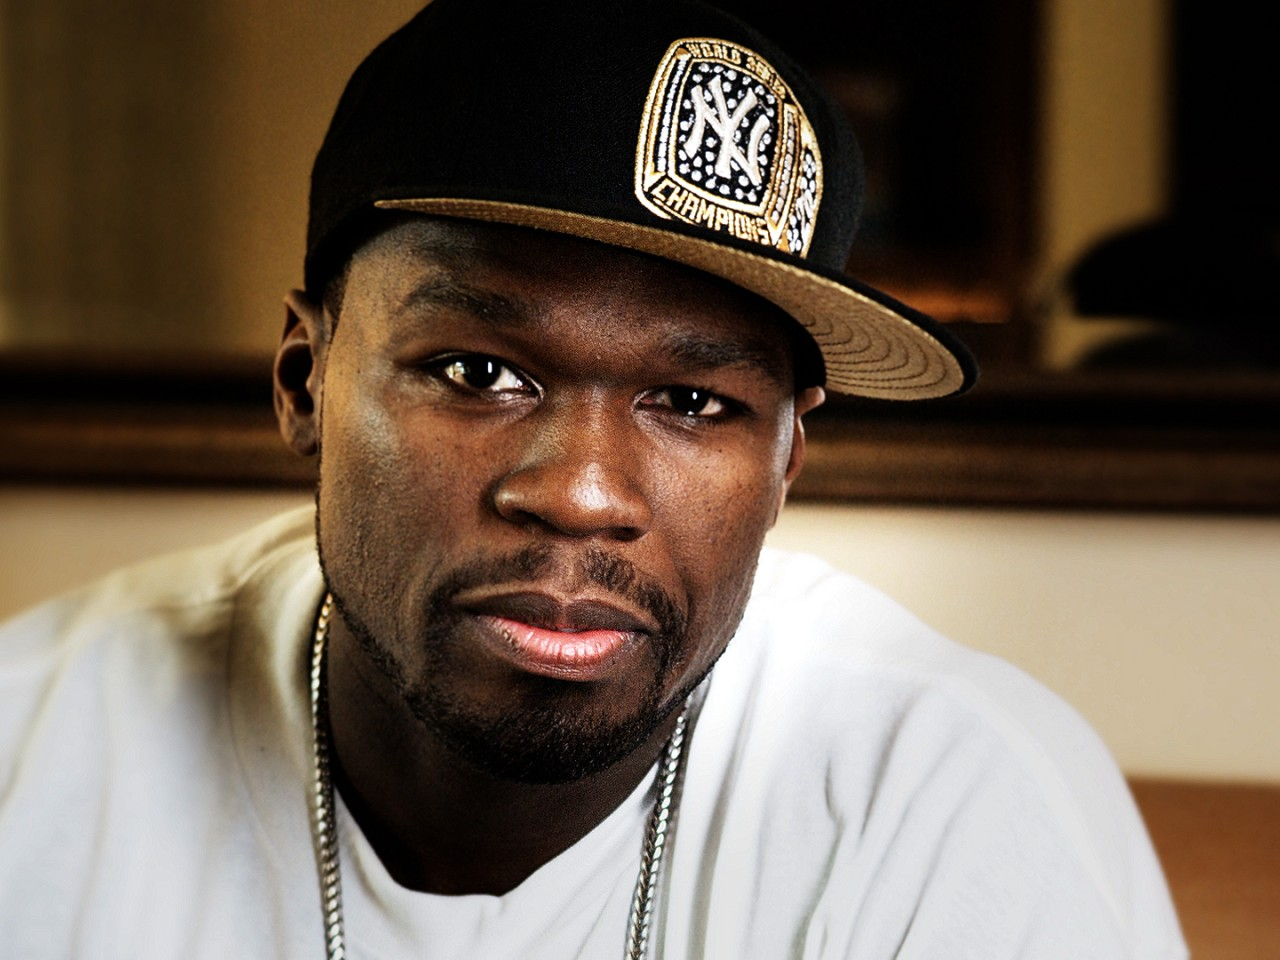 World Famous 50 Cent Rapper - HD Wallpapers